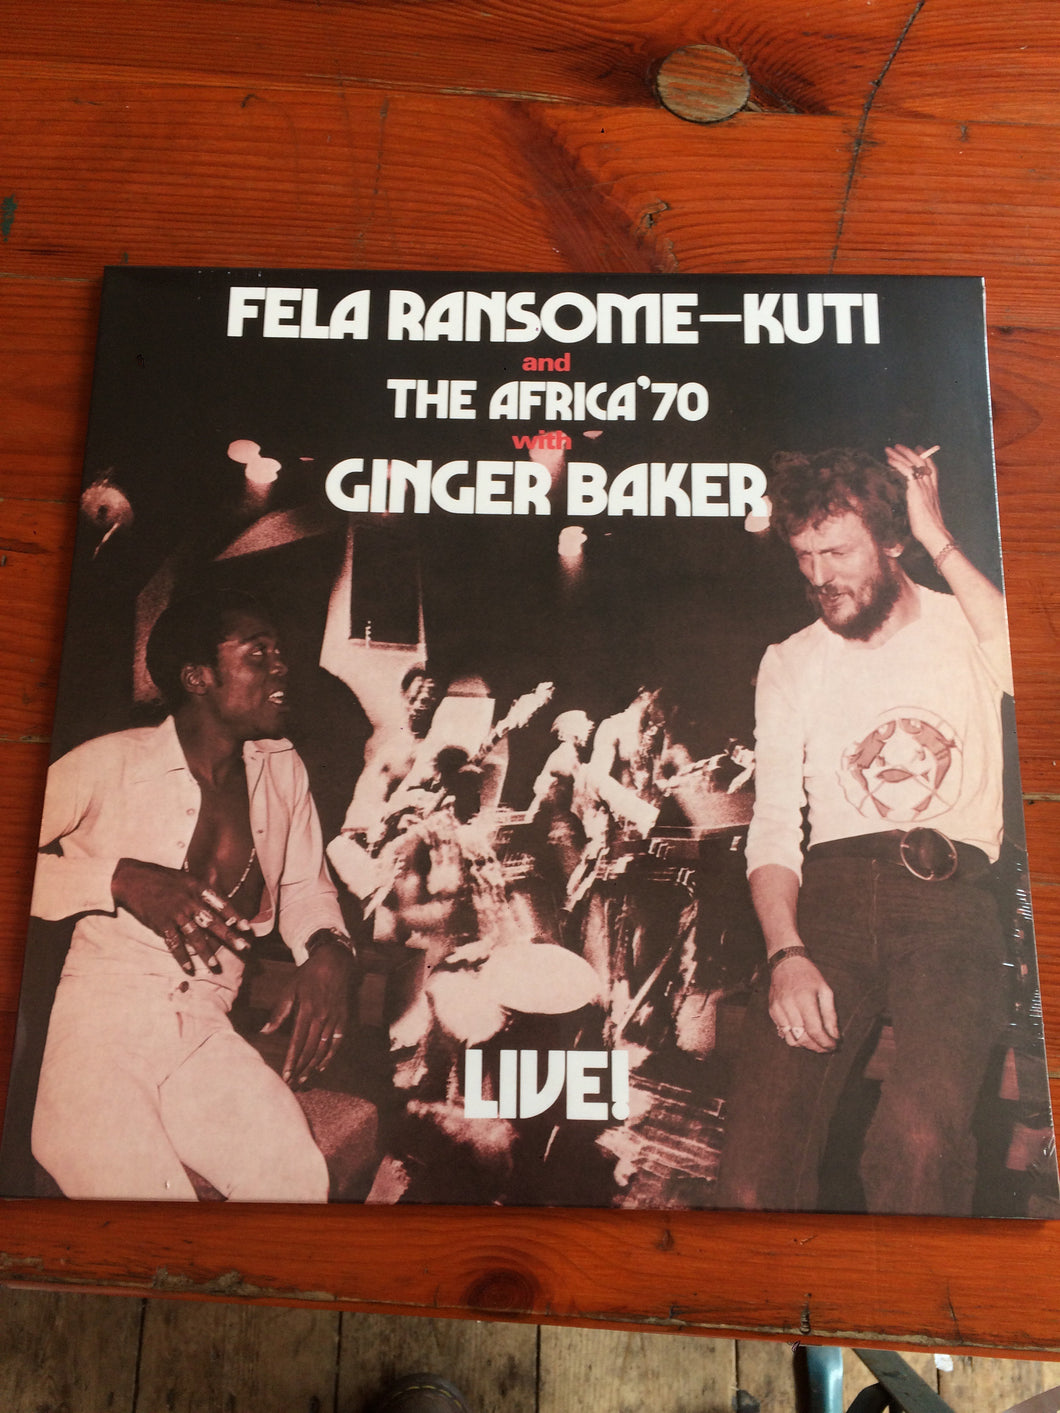 Fela Ransome - Kuti and The Africa '70 with Ginger Baker